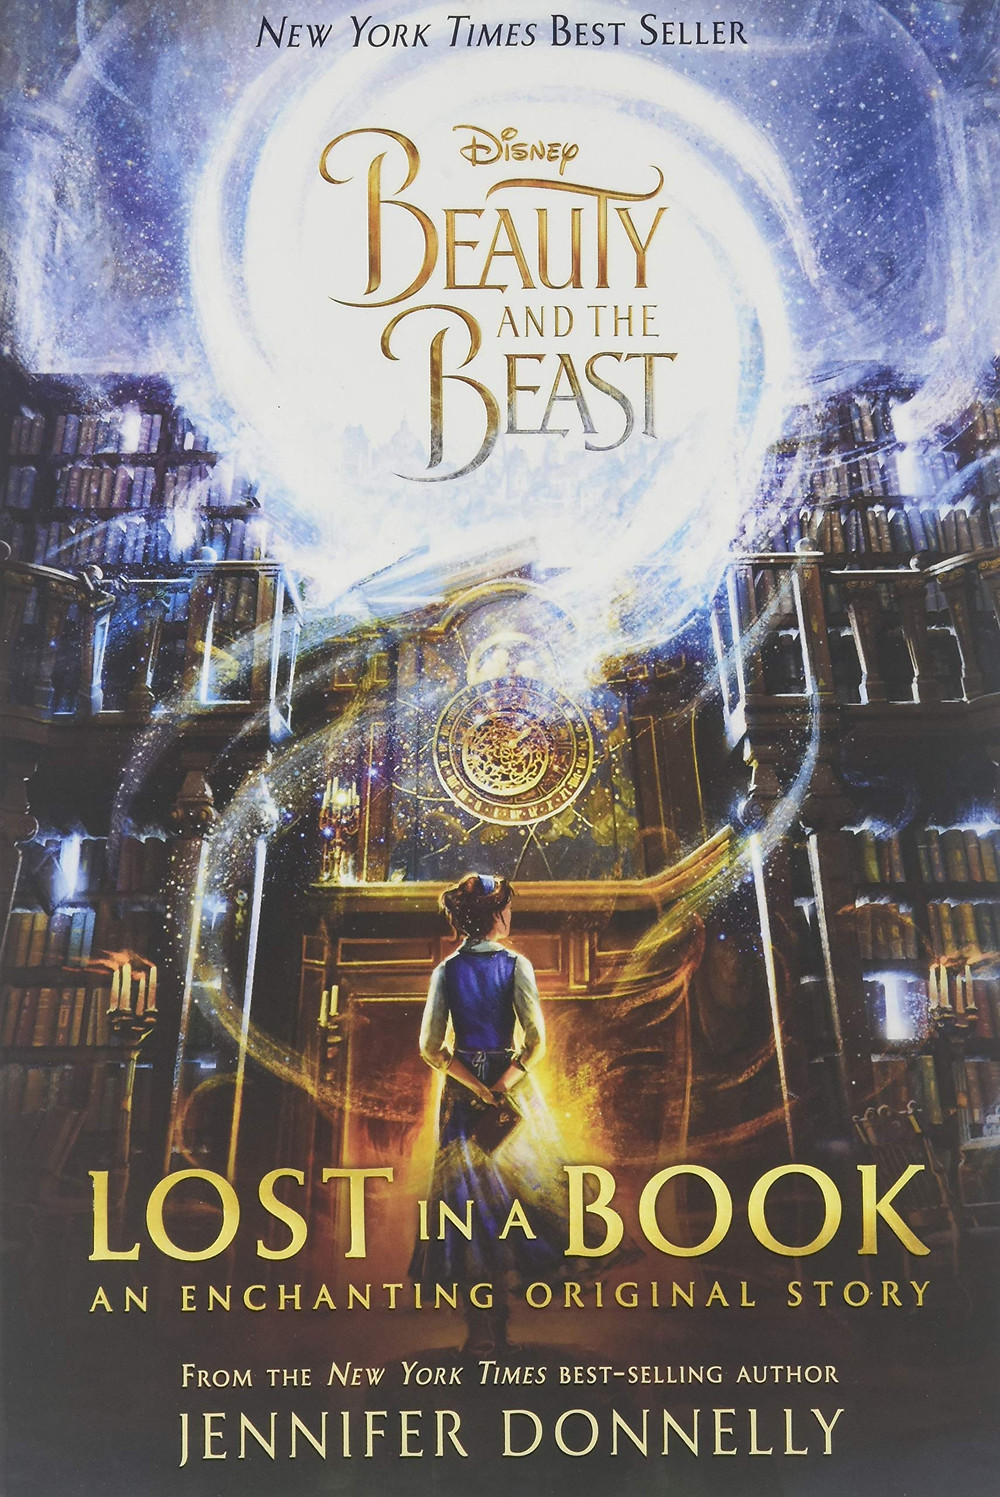 Disney Beauty and the Beast Lost in a Book cover by Jennifer Donnelly shows Belle looking at a bookshelf